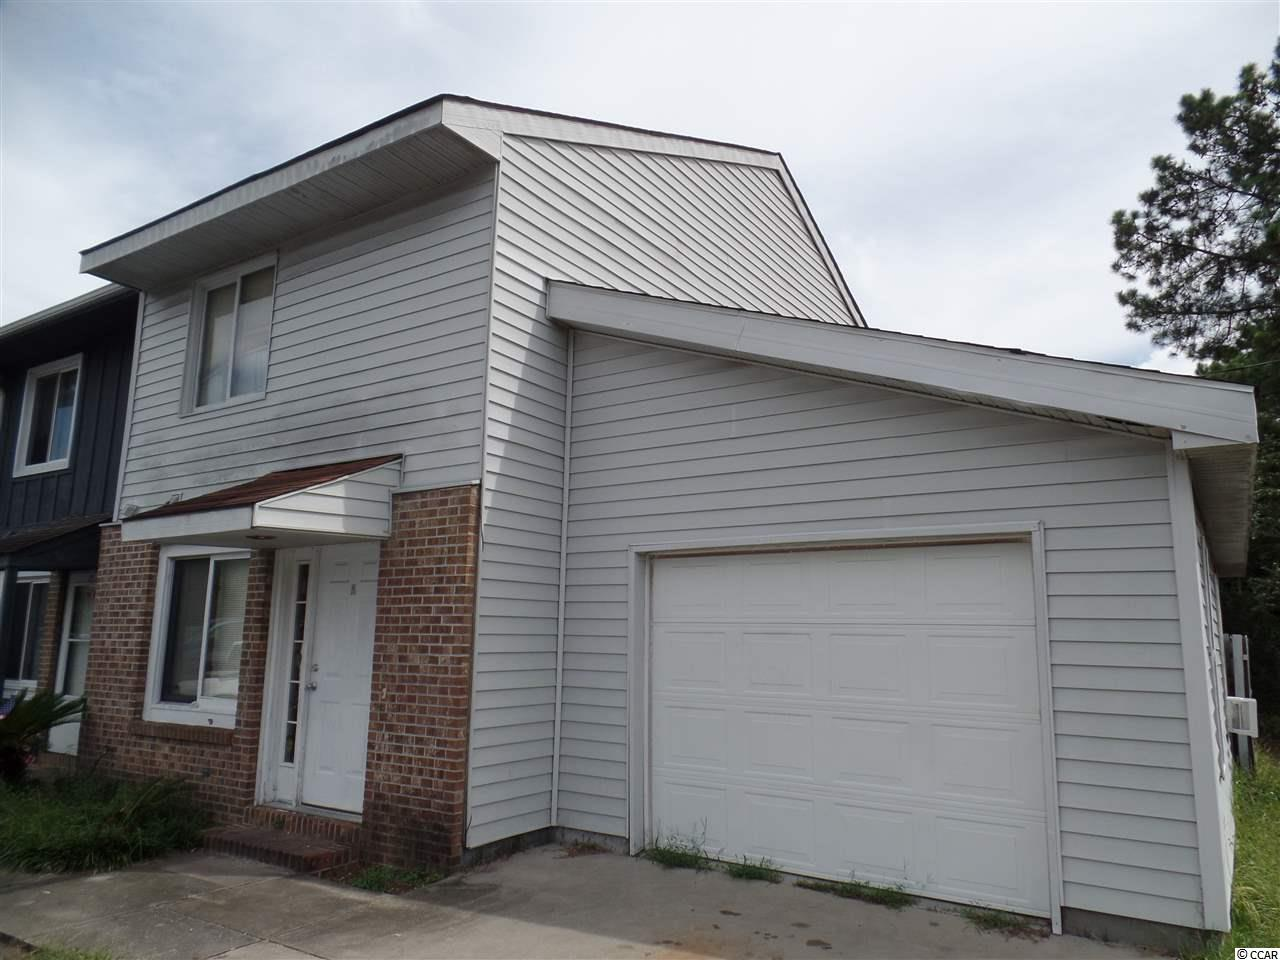 WESTWOOD condo for sale in Myrtle Beach, SC